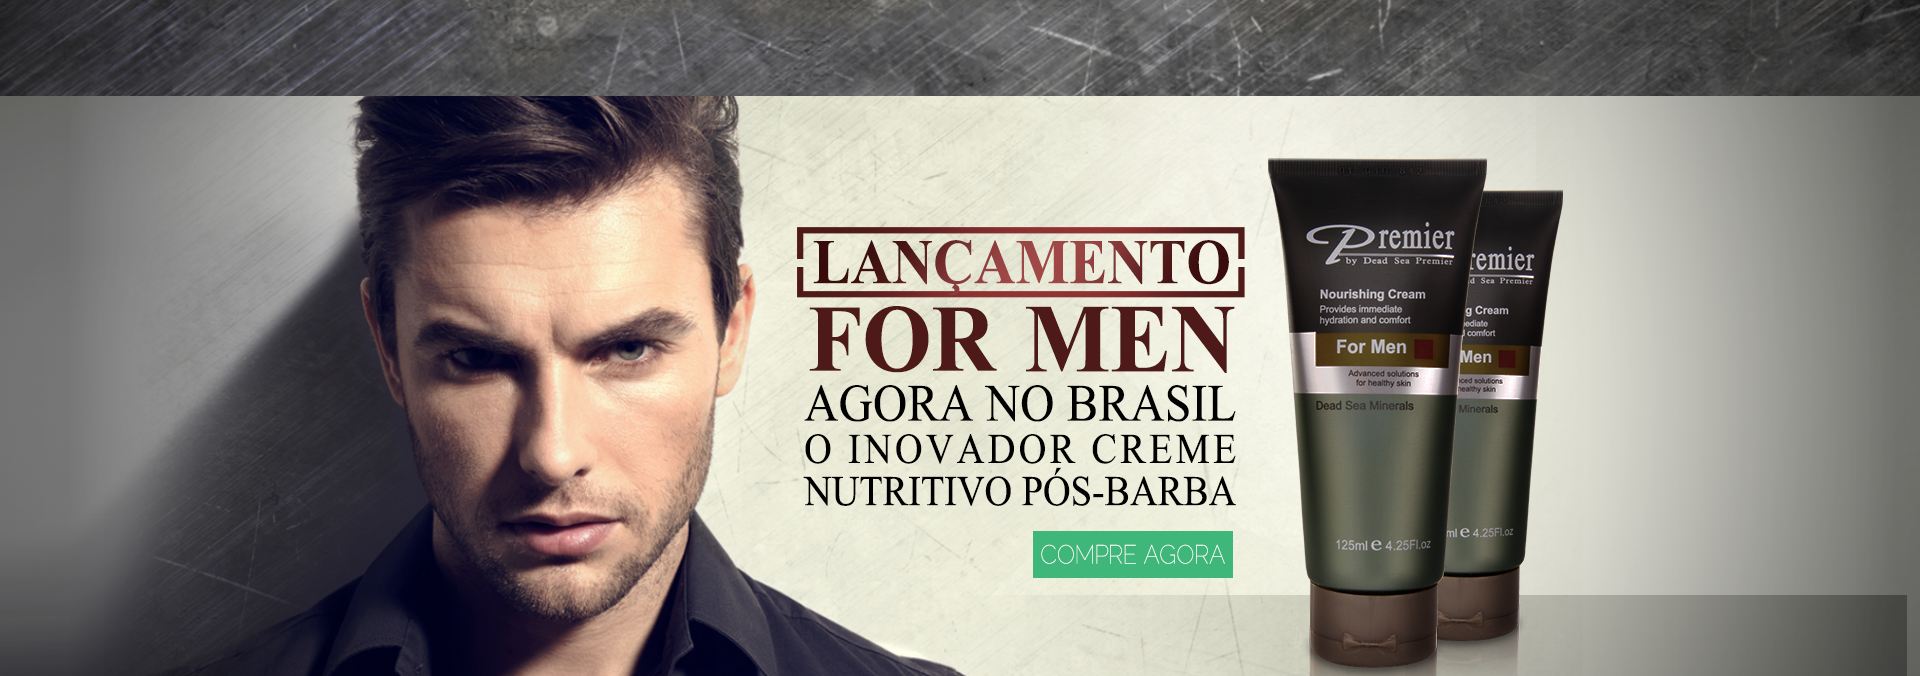 lançamento_Nourishing Cream for Men